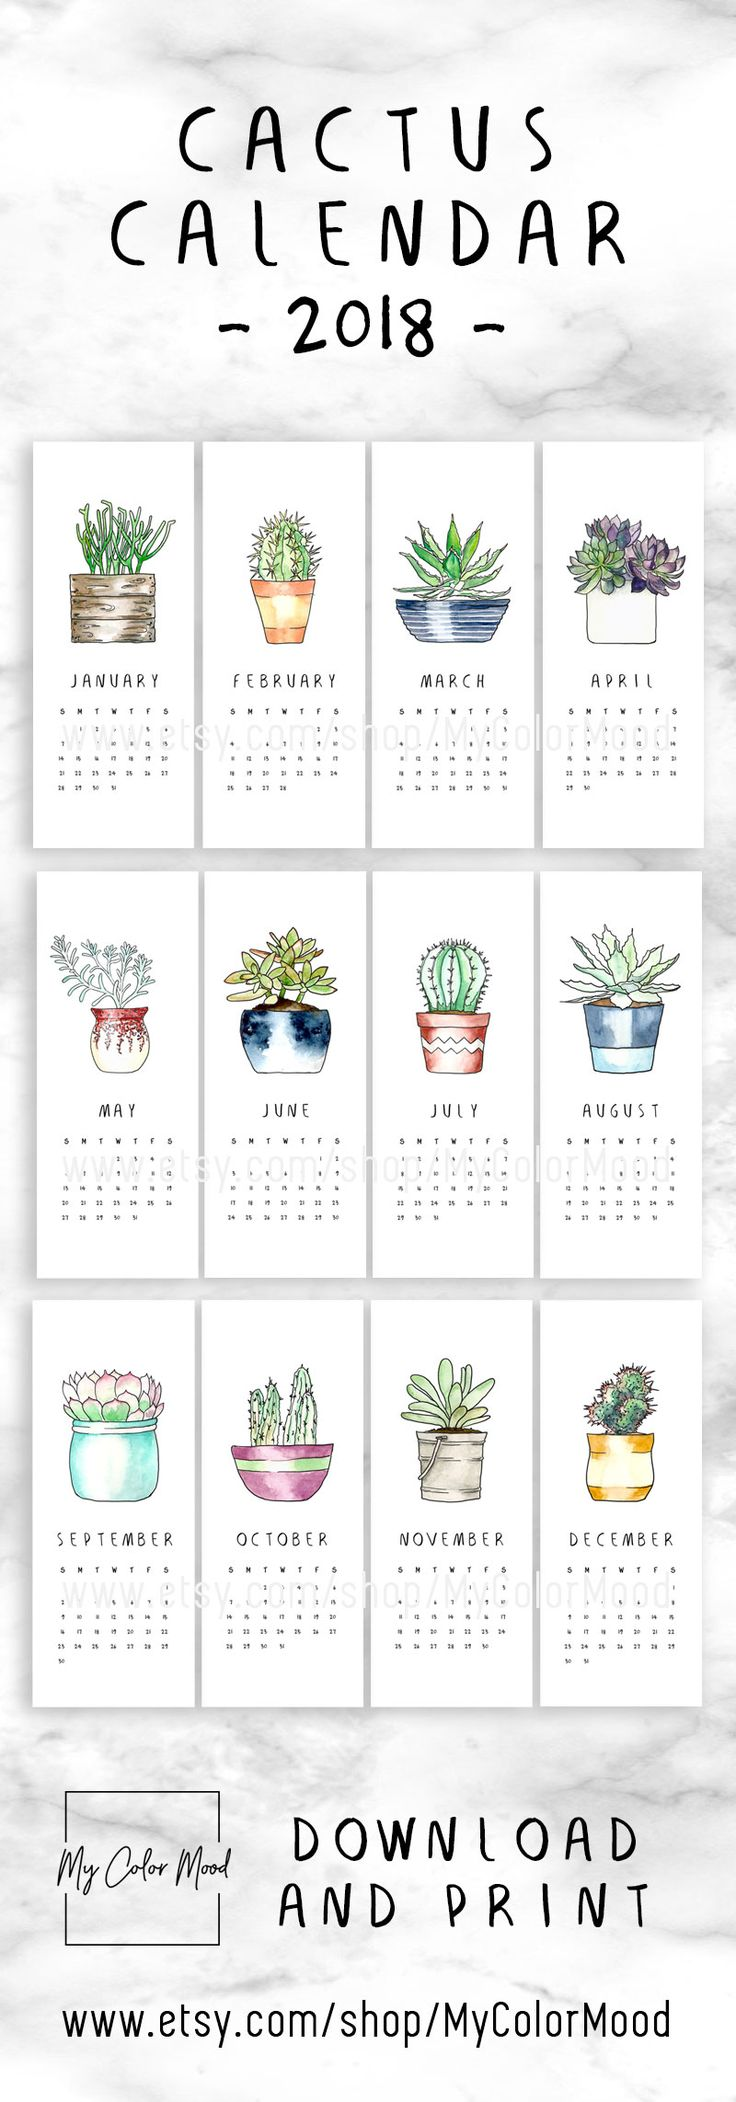 Printable calendar pages 2018, Small monthly calendar 2018 printable, Calender 2018, Hanging cactus calendar, Modern office calendar decor